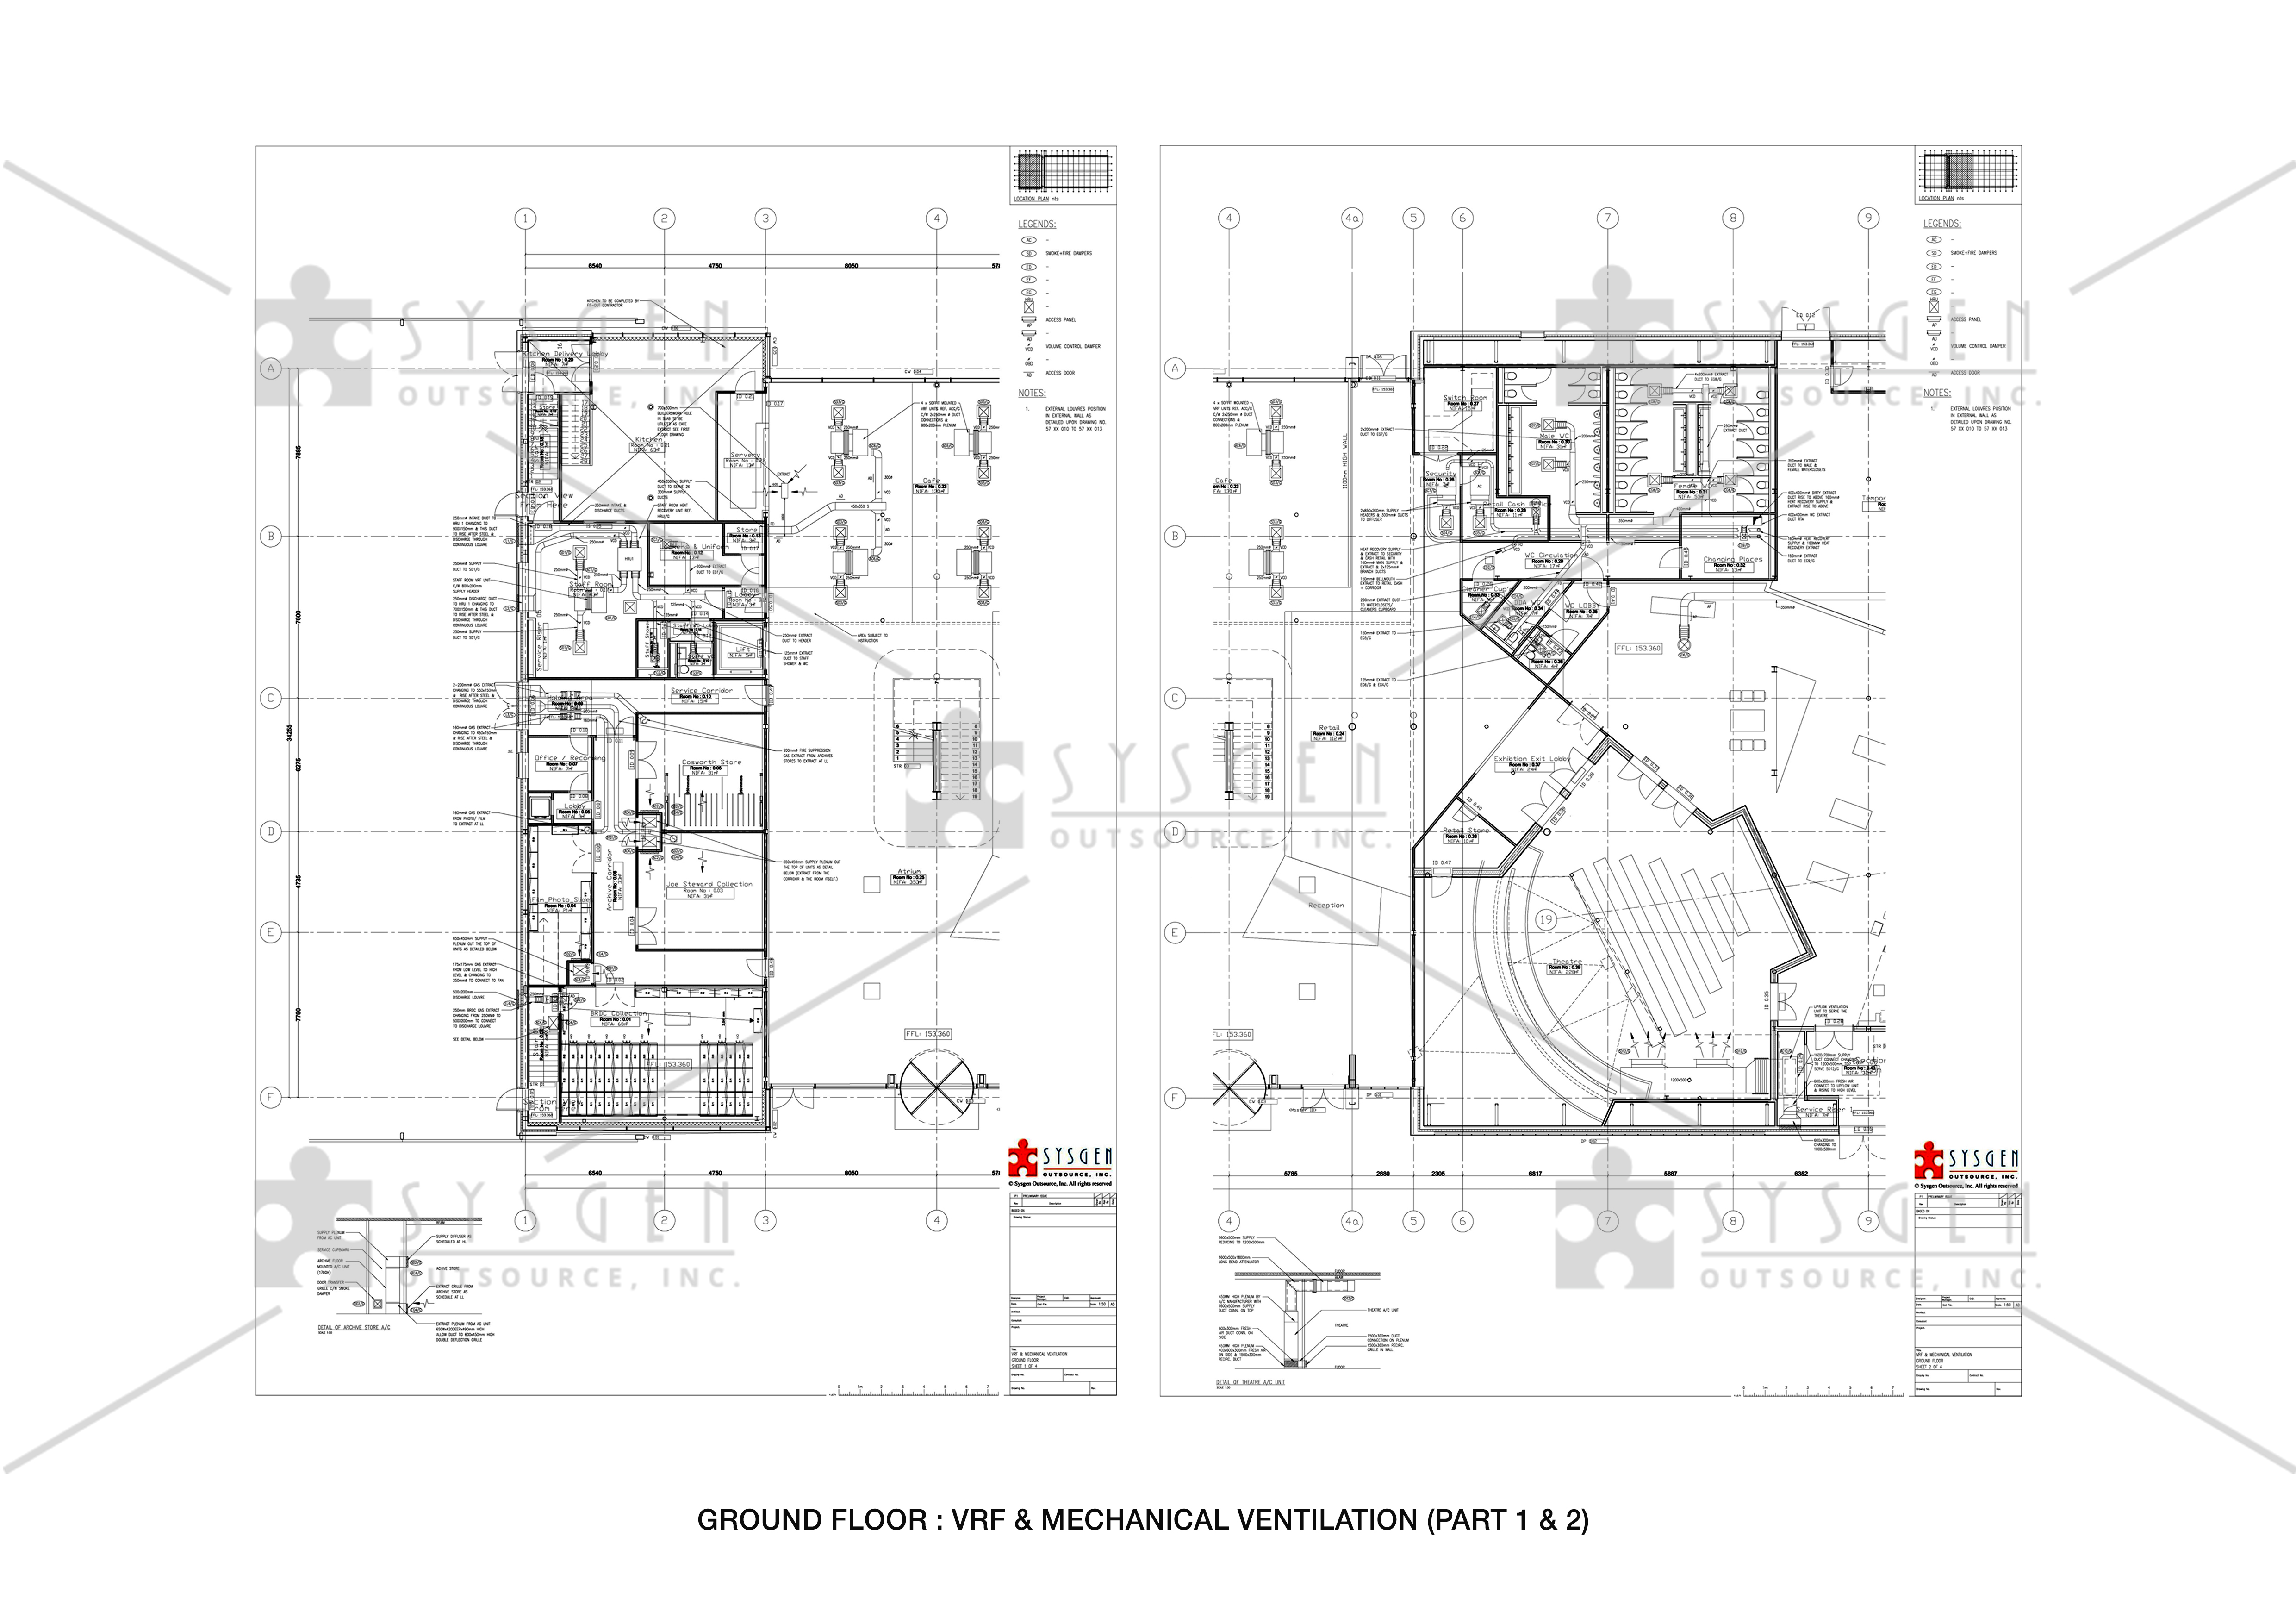 sysgen-outsource-cad-outsourcing-services-engineering-mechs5